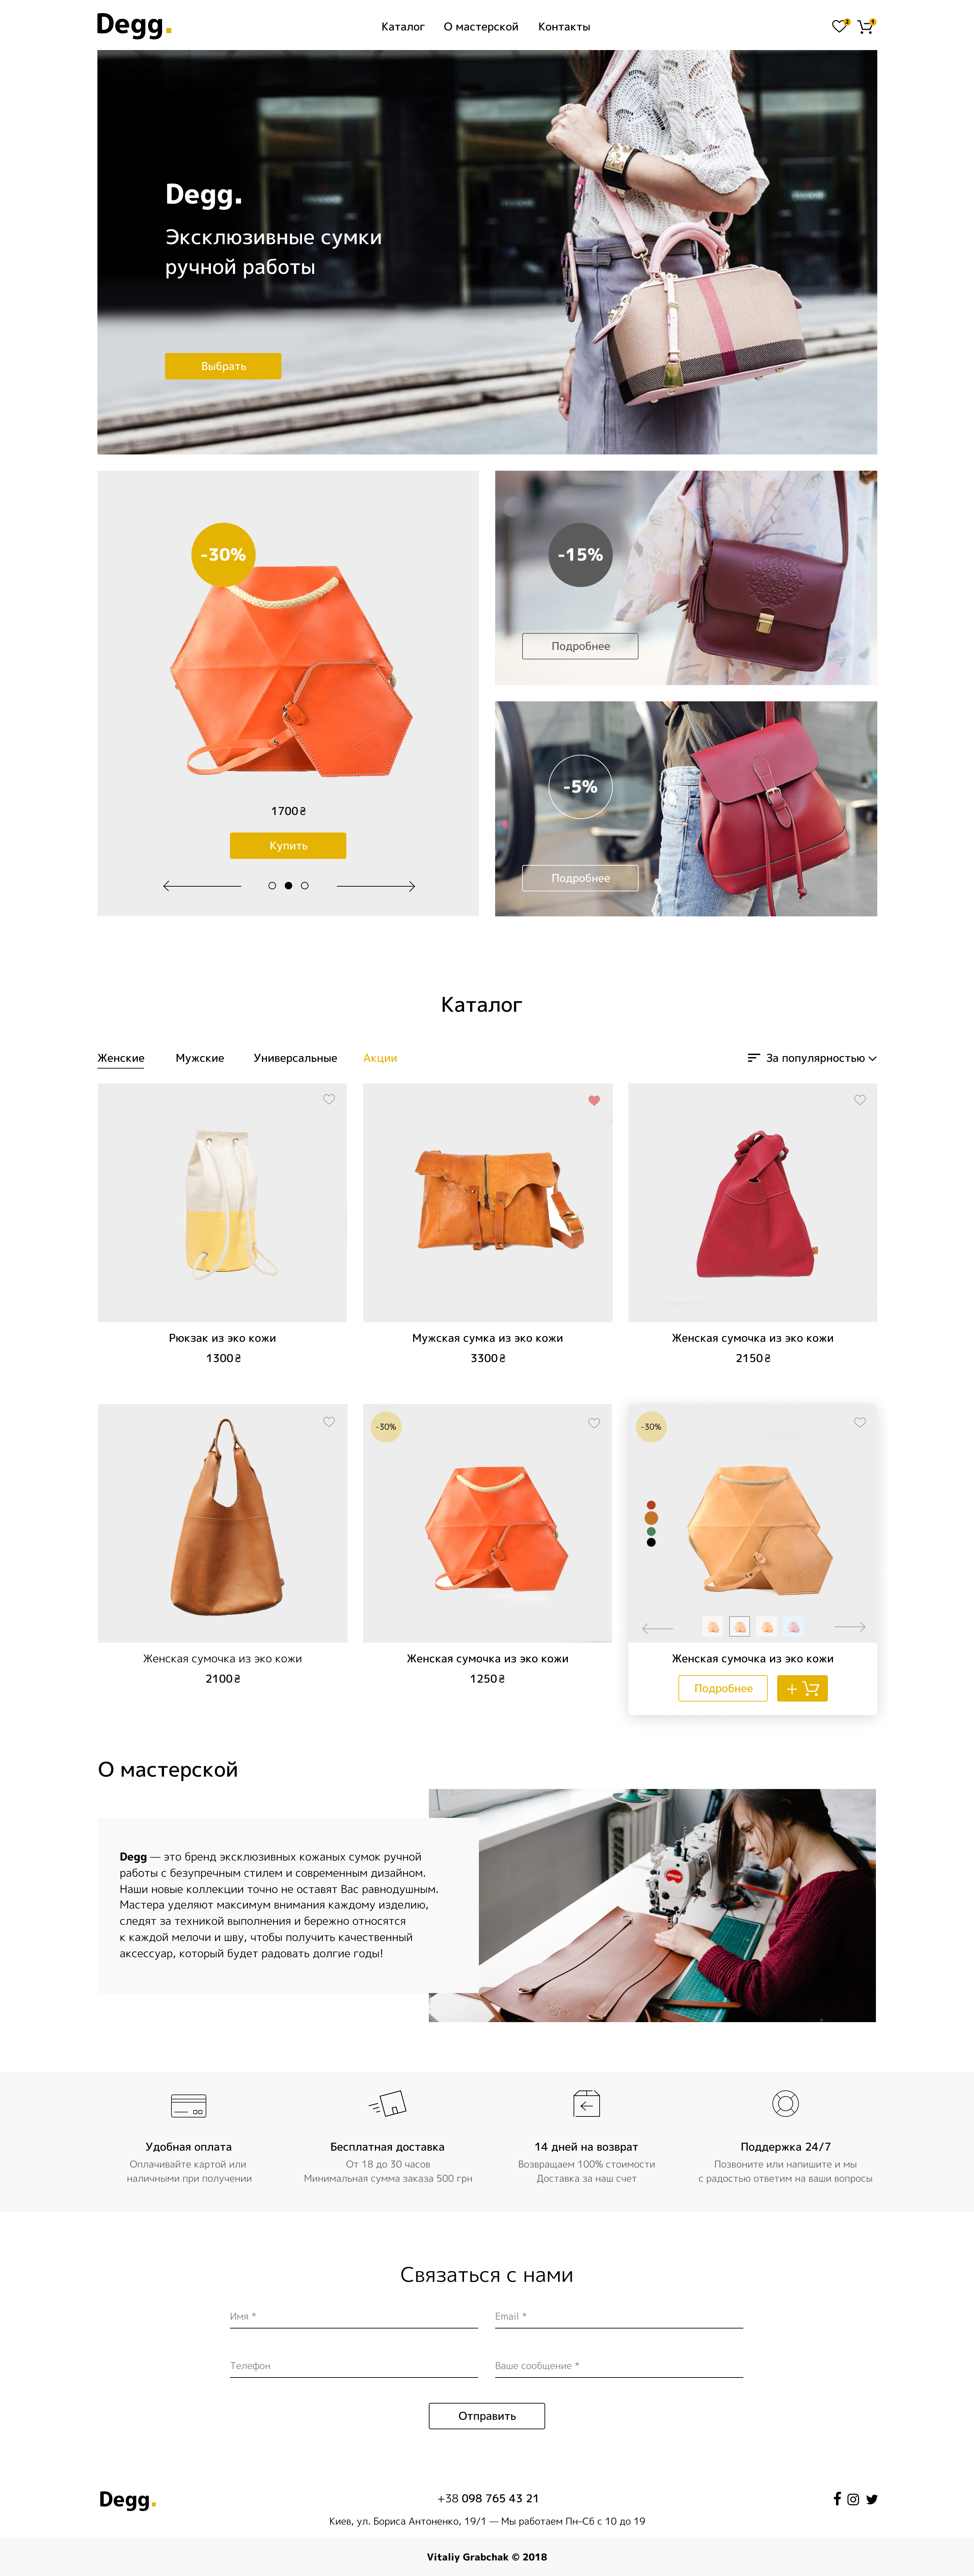 Degg Bags — Ecommerce landing page template